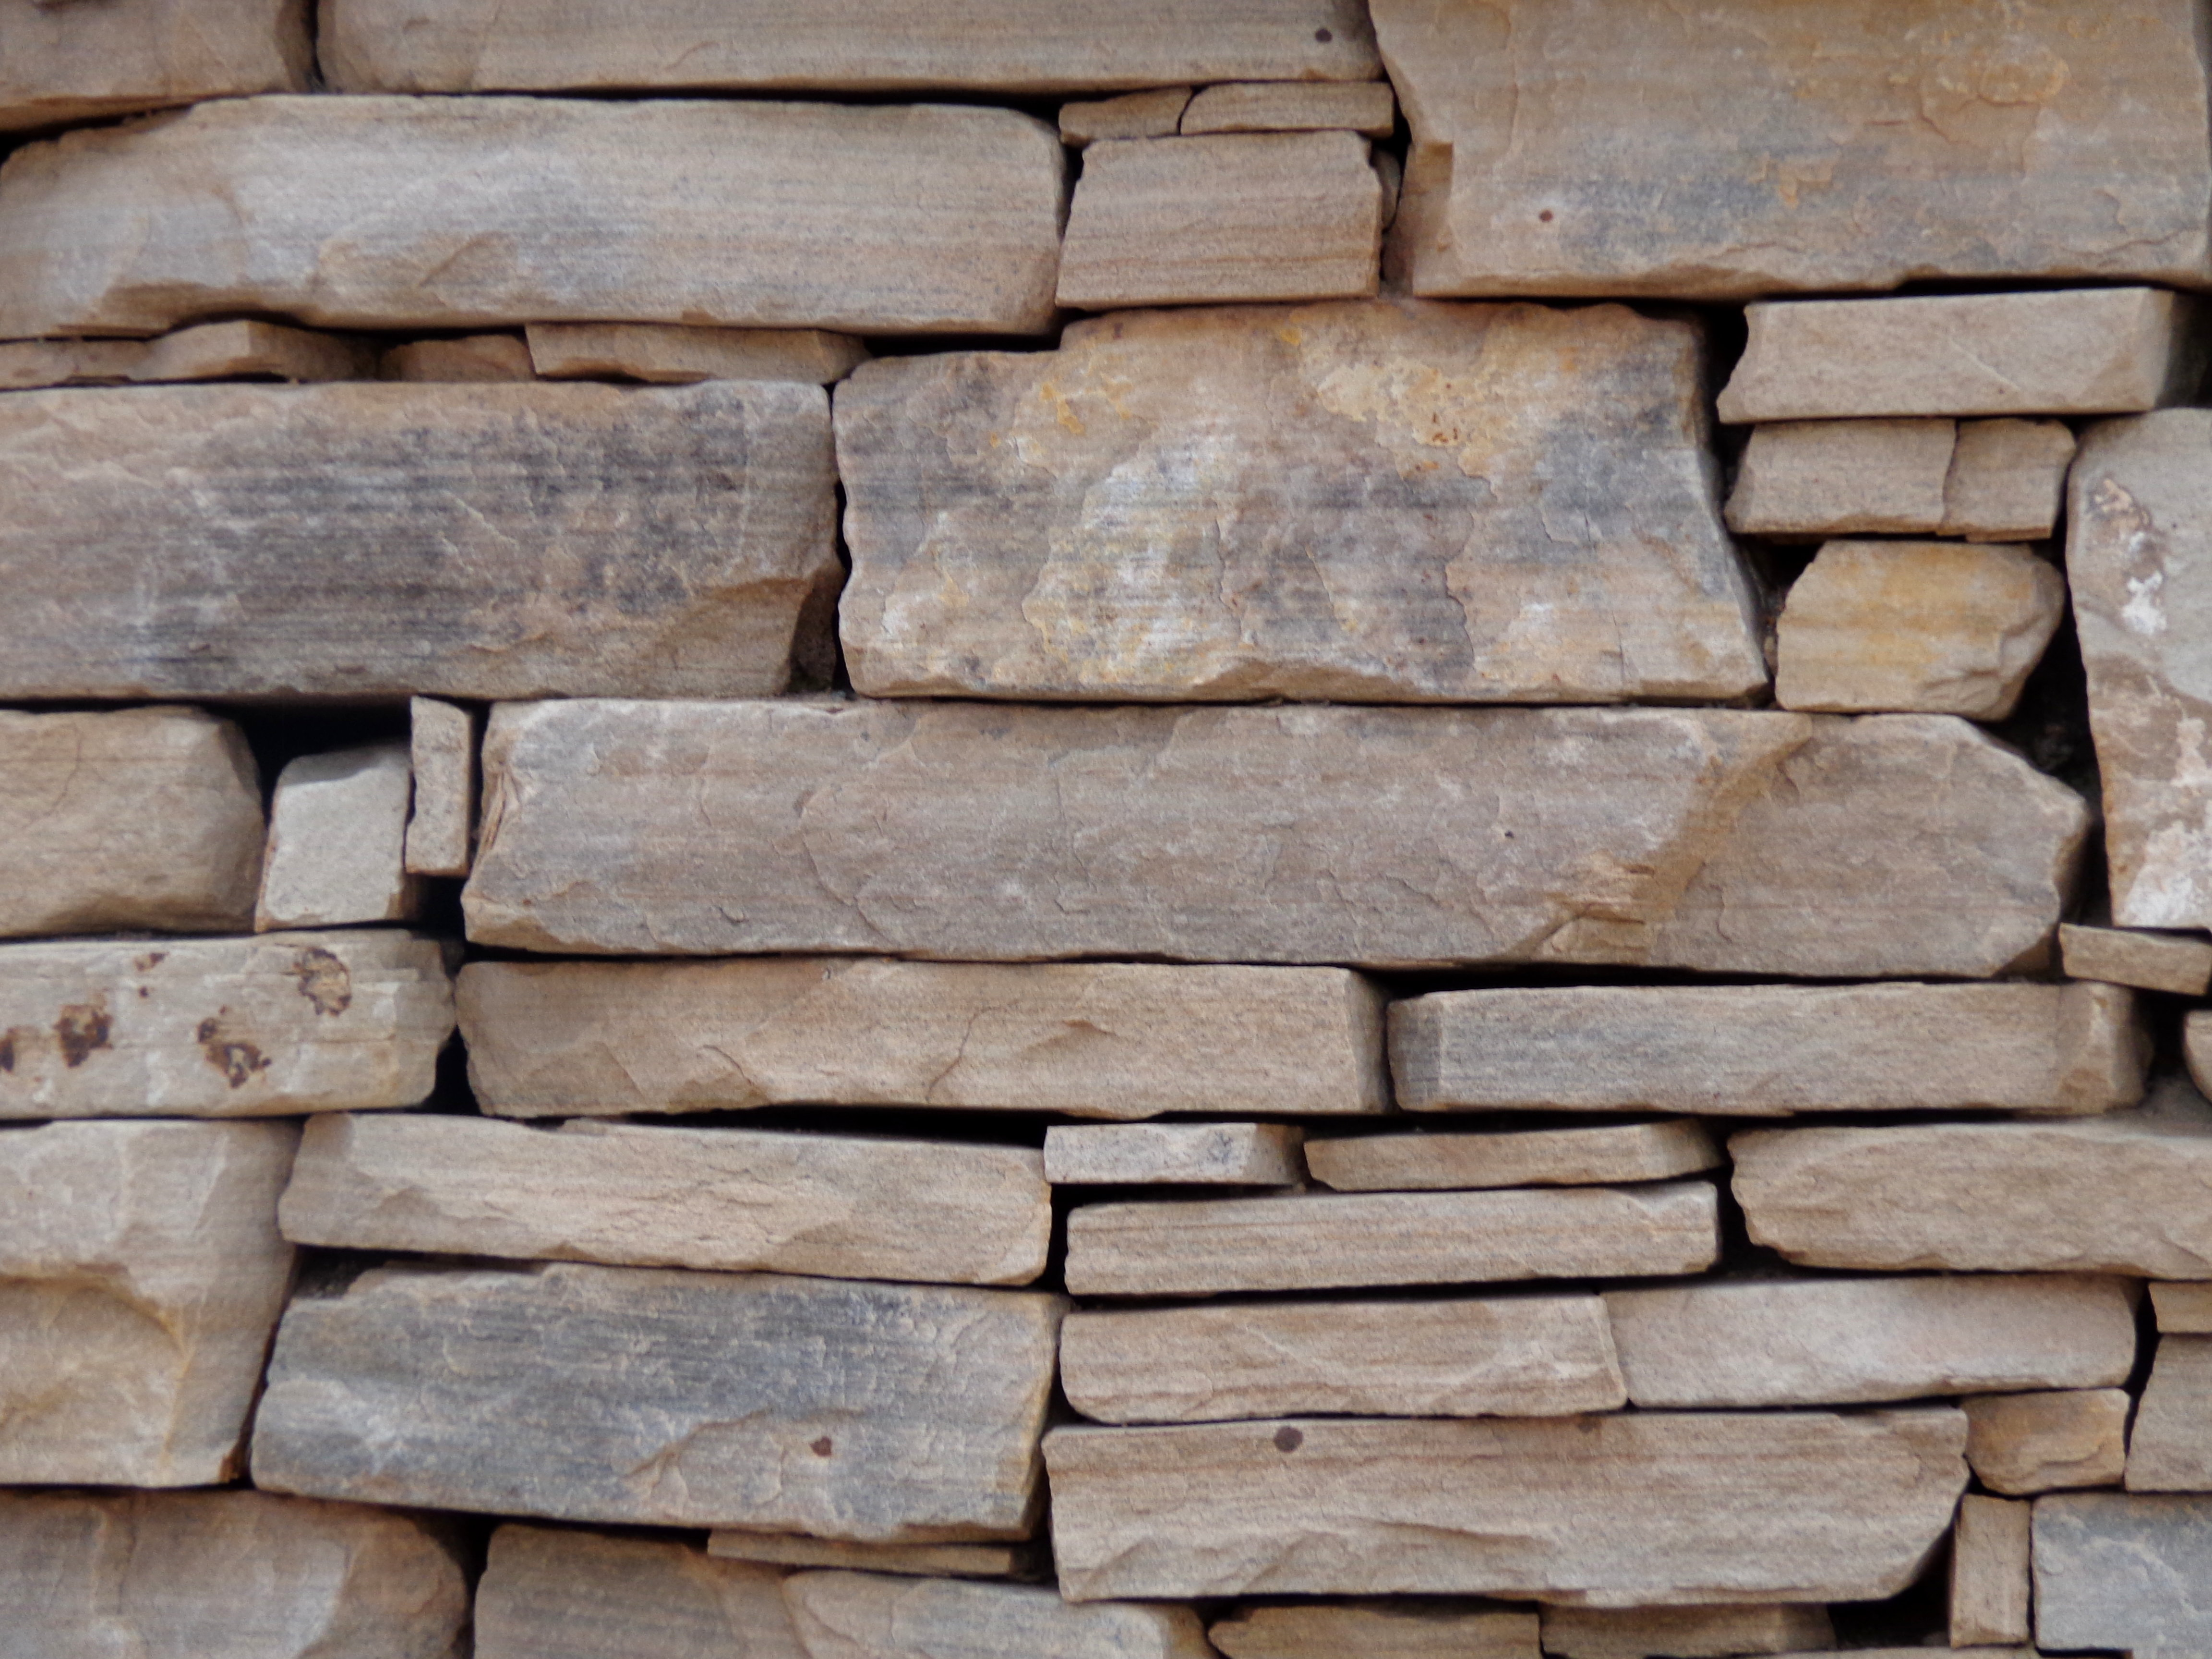 Sandstone Rock Wall without Mortar Texture Picture.